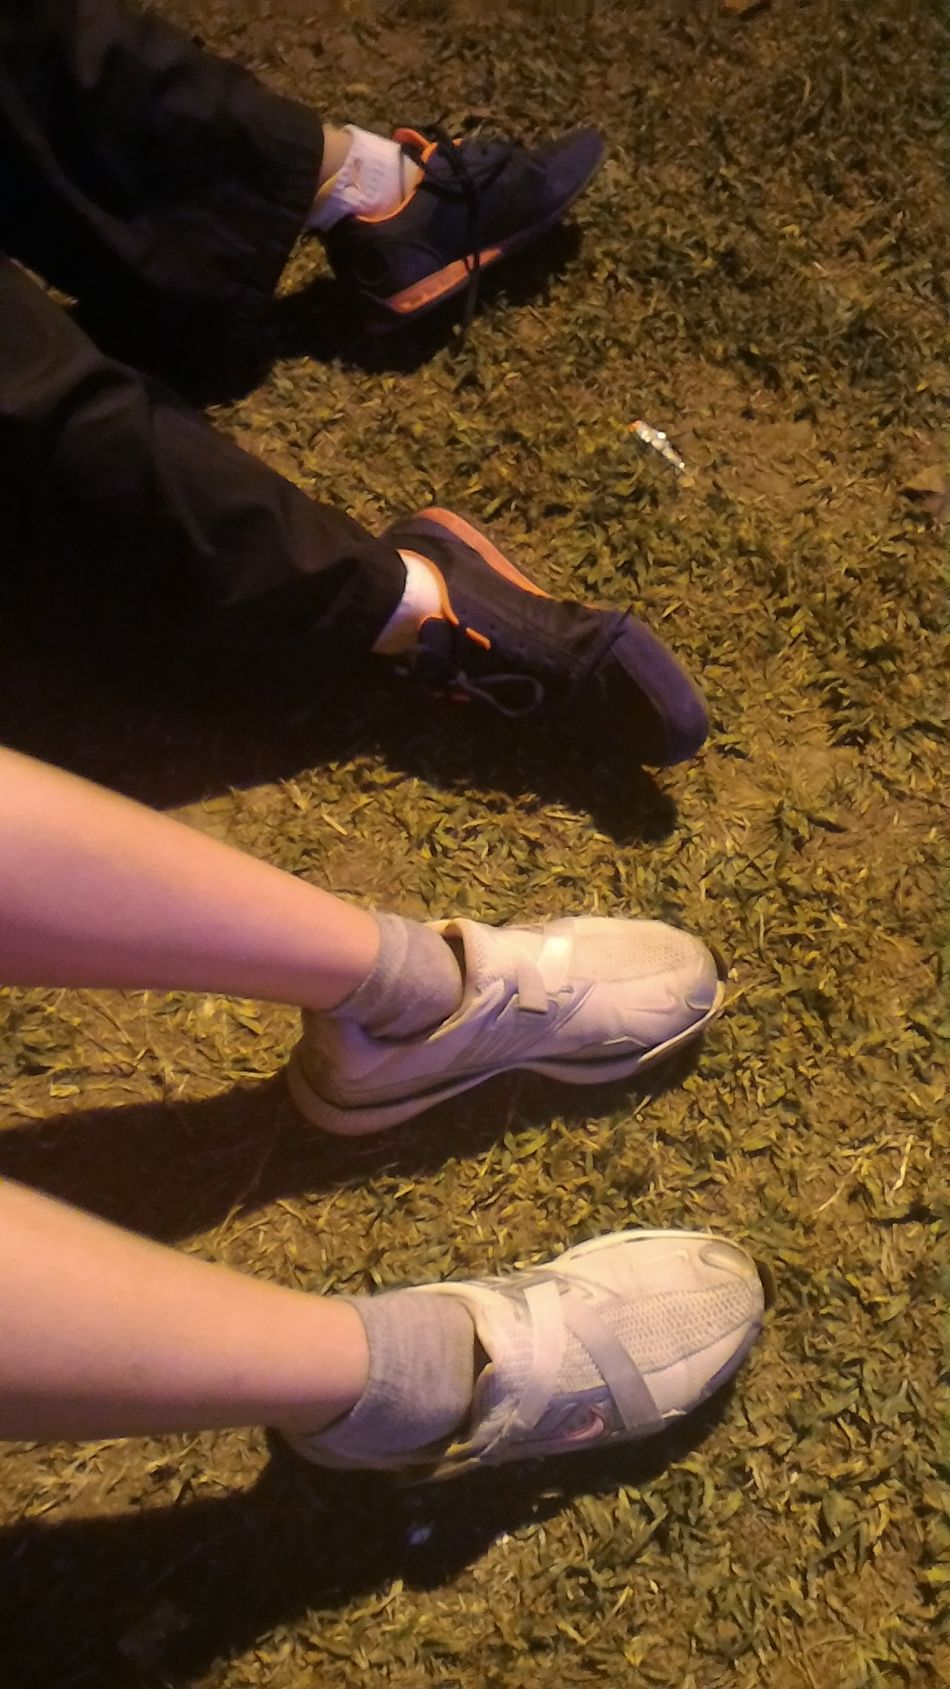 Missing this! Jogging Nightjogging Rest Rubbershoes